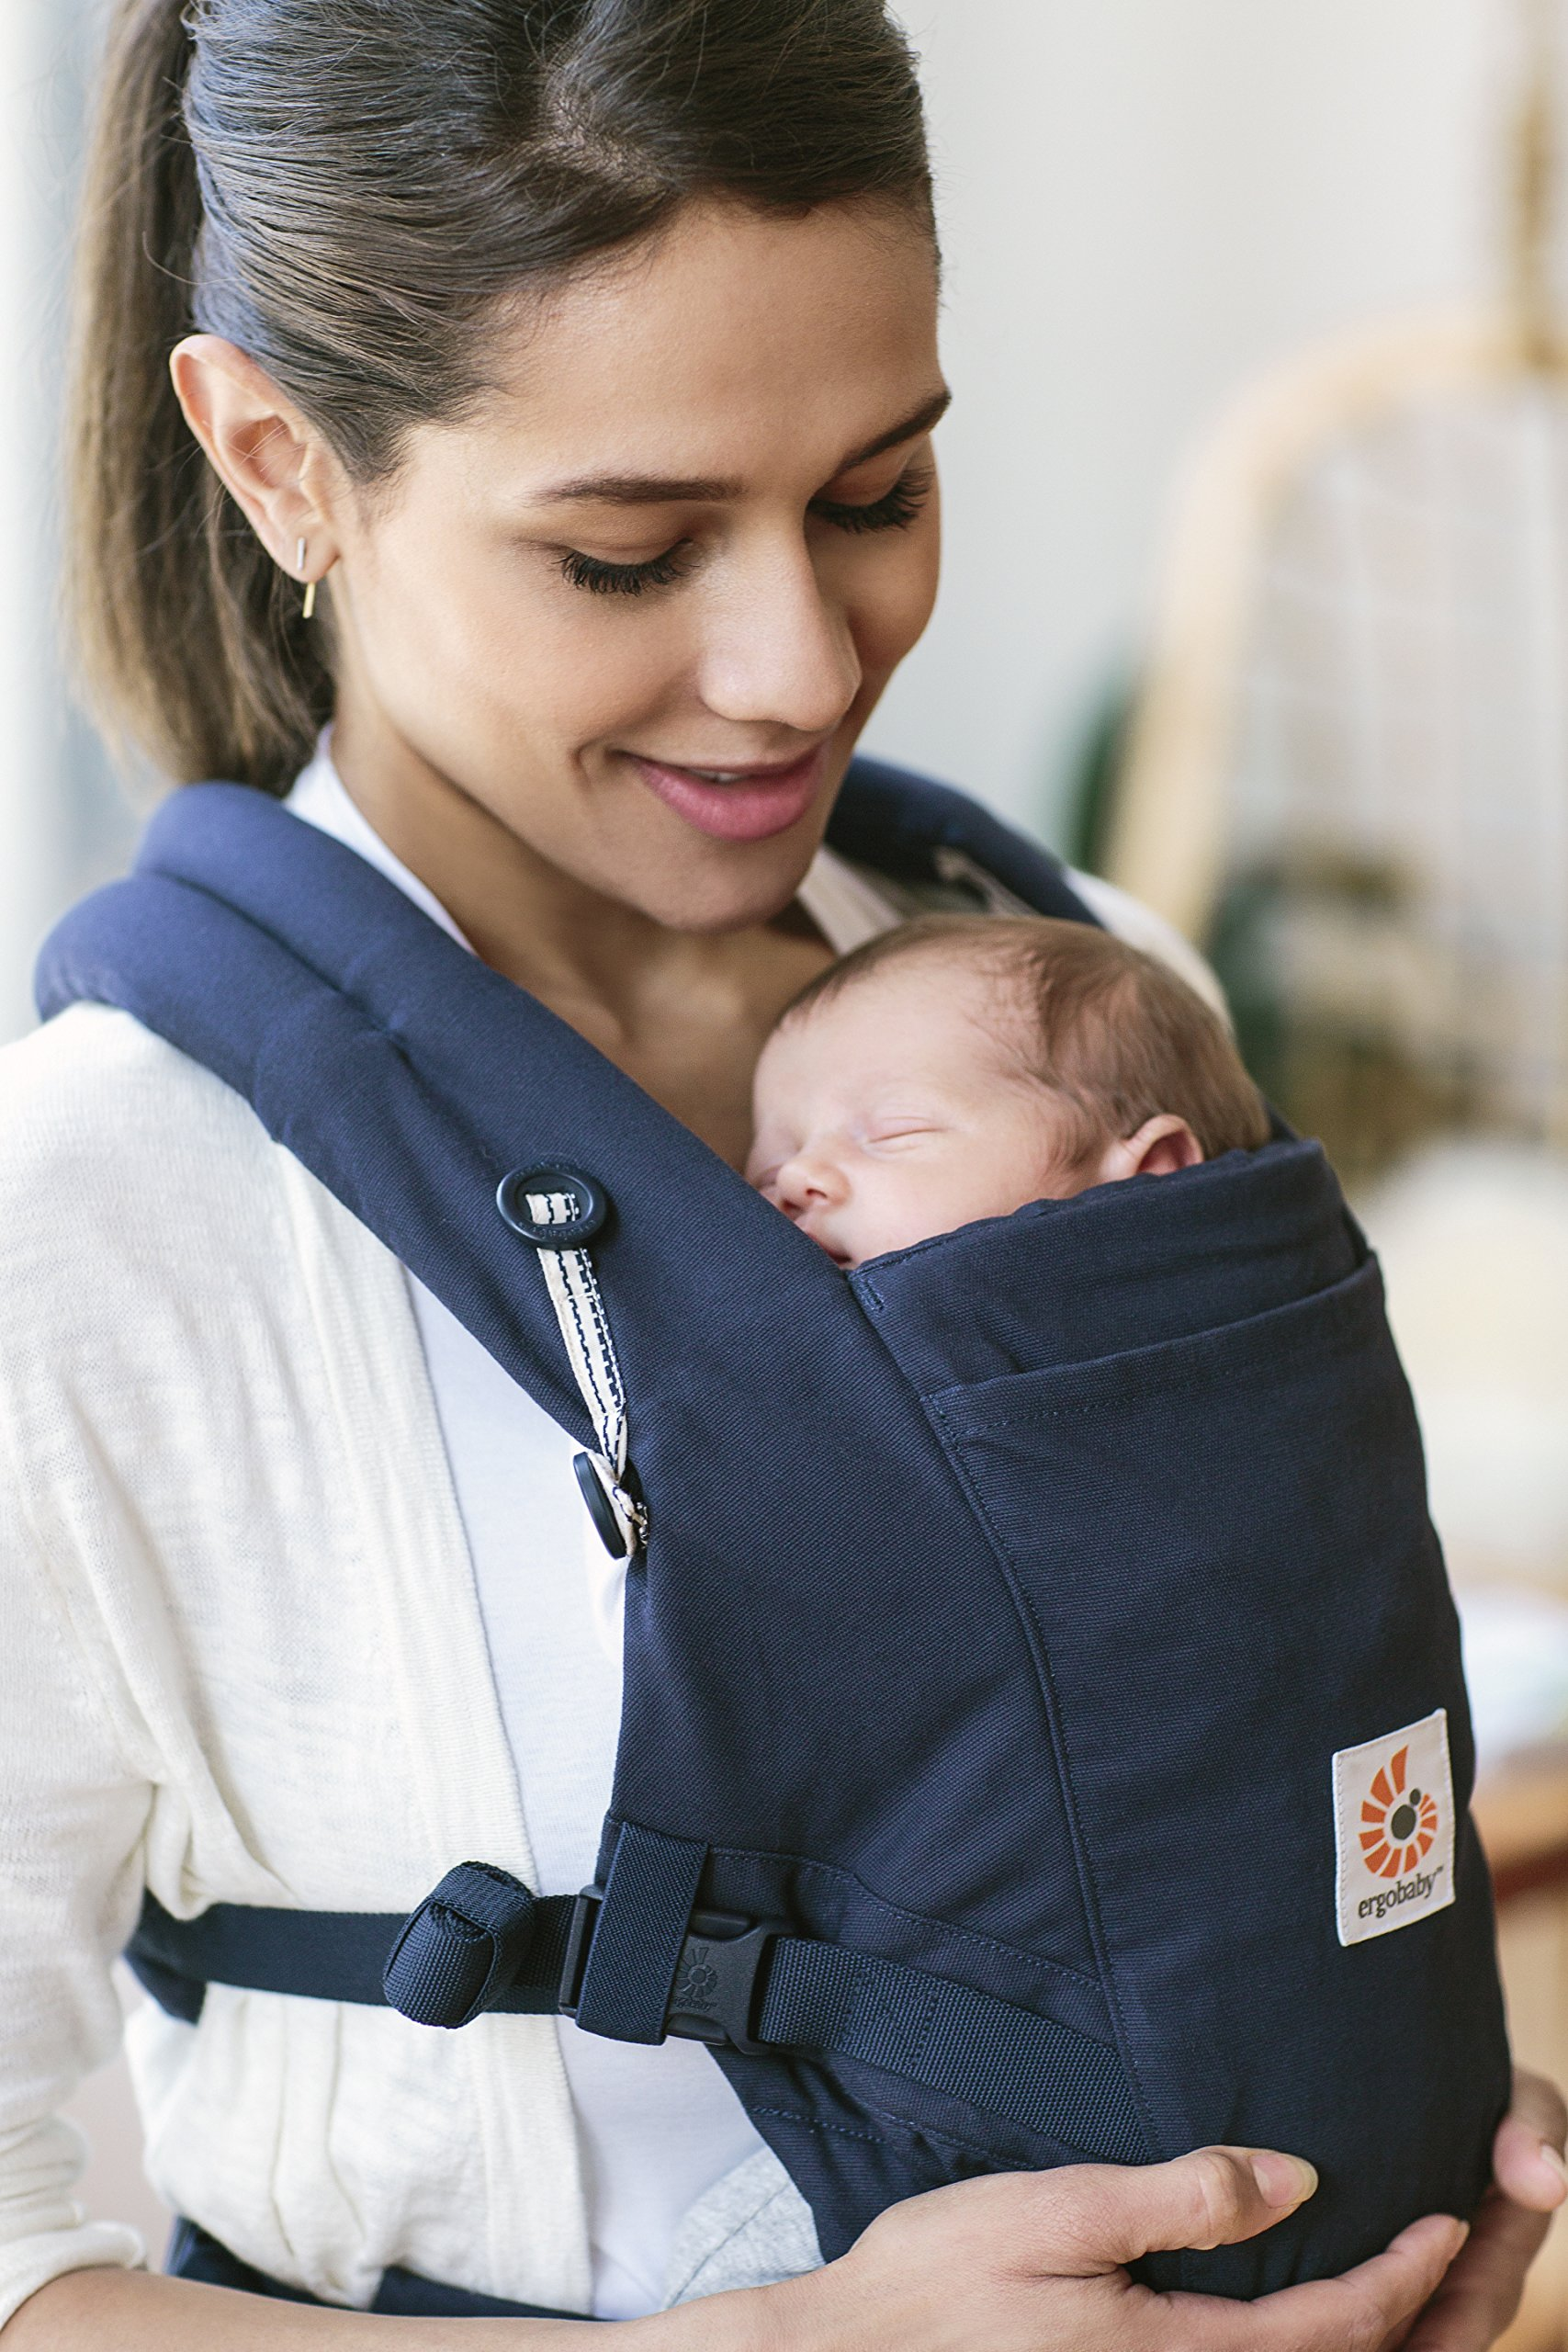 Ergobaby Baby Carrier for Newborn to Toddler, Admiral Blue Adapt 3-Position Ergonomic Child Carrier Backpack Ergobaby Carrier for newborns - The ergonomic bucket seat gradually adjusts to your growing baby, to ensure baby is seated in a natural frog-leg position (M-shape position) from newborn to toddler (3.2-20kg / 7-45lbs). NEW - Now with lumbar support. Long-wearing comfort for parents with even weight distribution between hips and shoulders. Lumbar support waistbelt that can be adjusted to the height of the carry position for extra, long-wearing comfort. 3carry positions: front-inward, hip and back. The carrier has a padded, foldable head and neck support and a tuck-away baby hood for sun protection (UPF50+) and privacy. It is possible to breastfeed in the carrier. 7